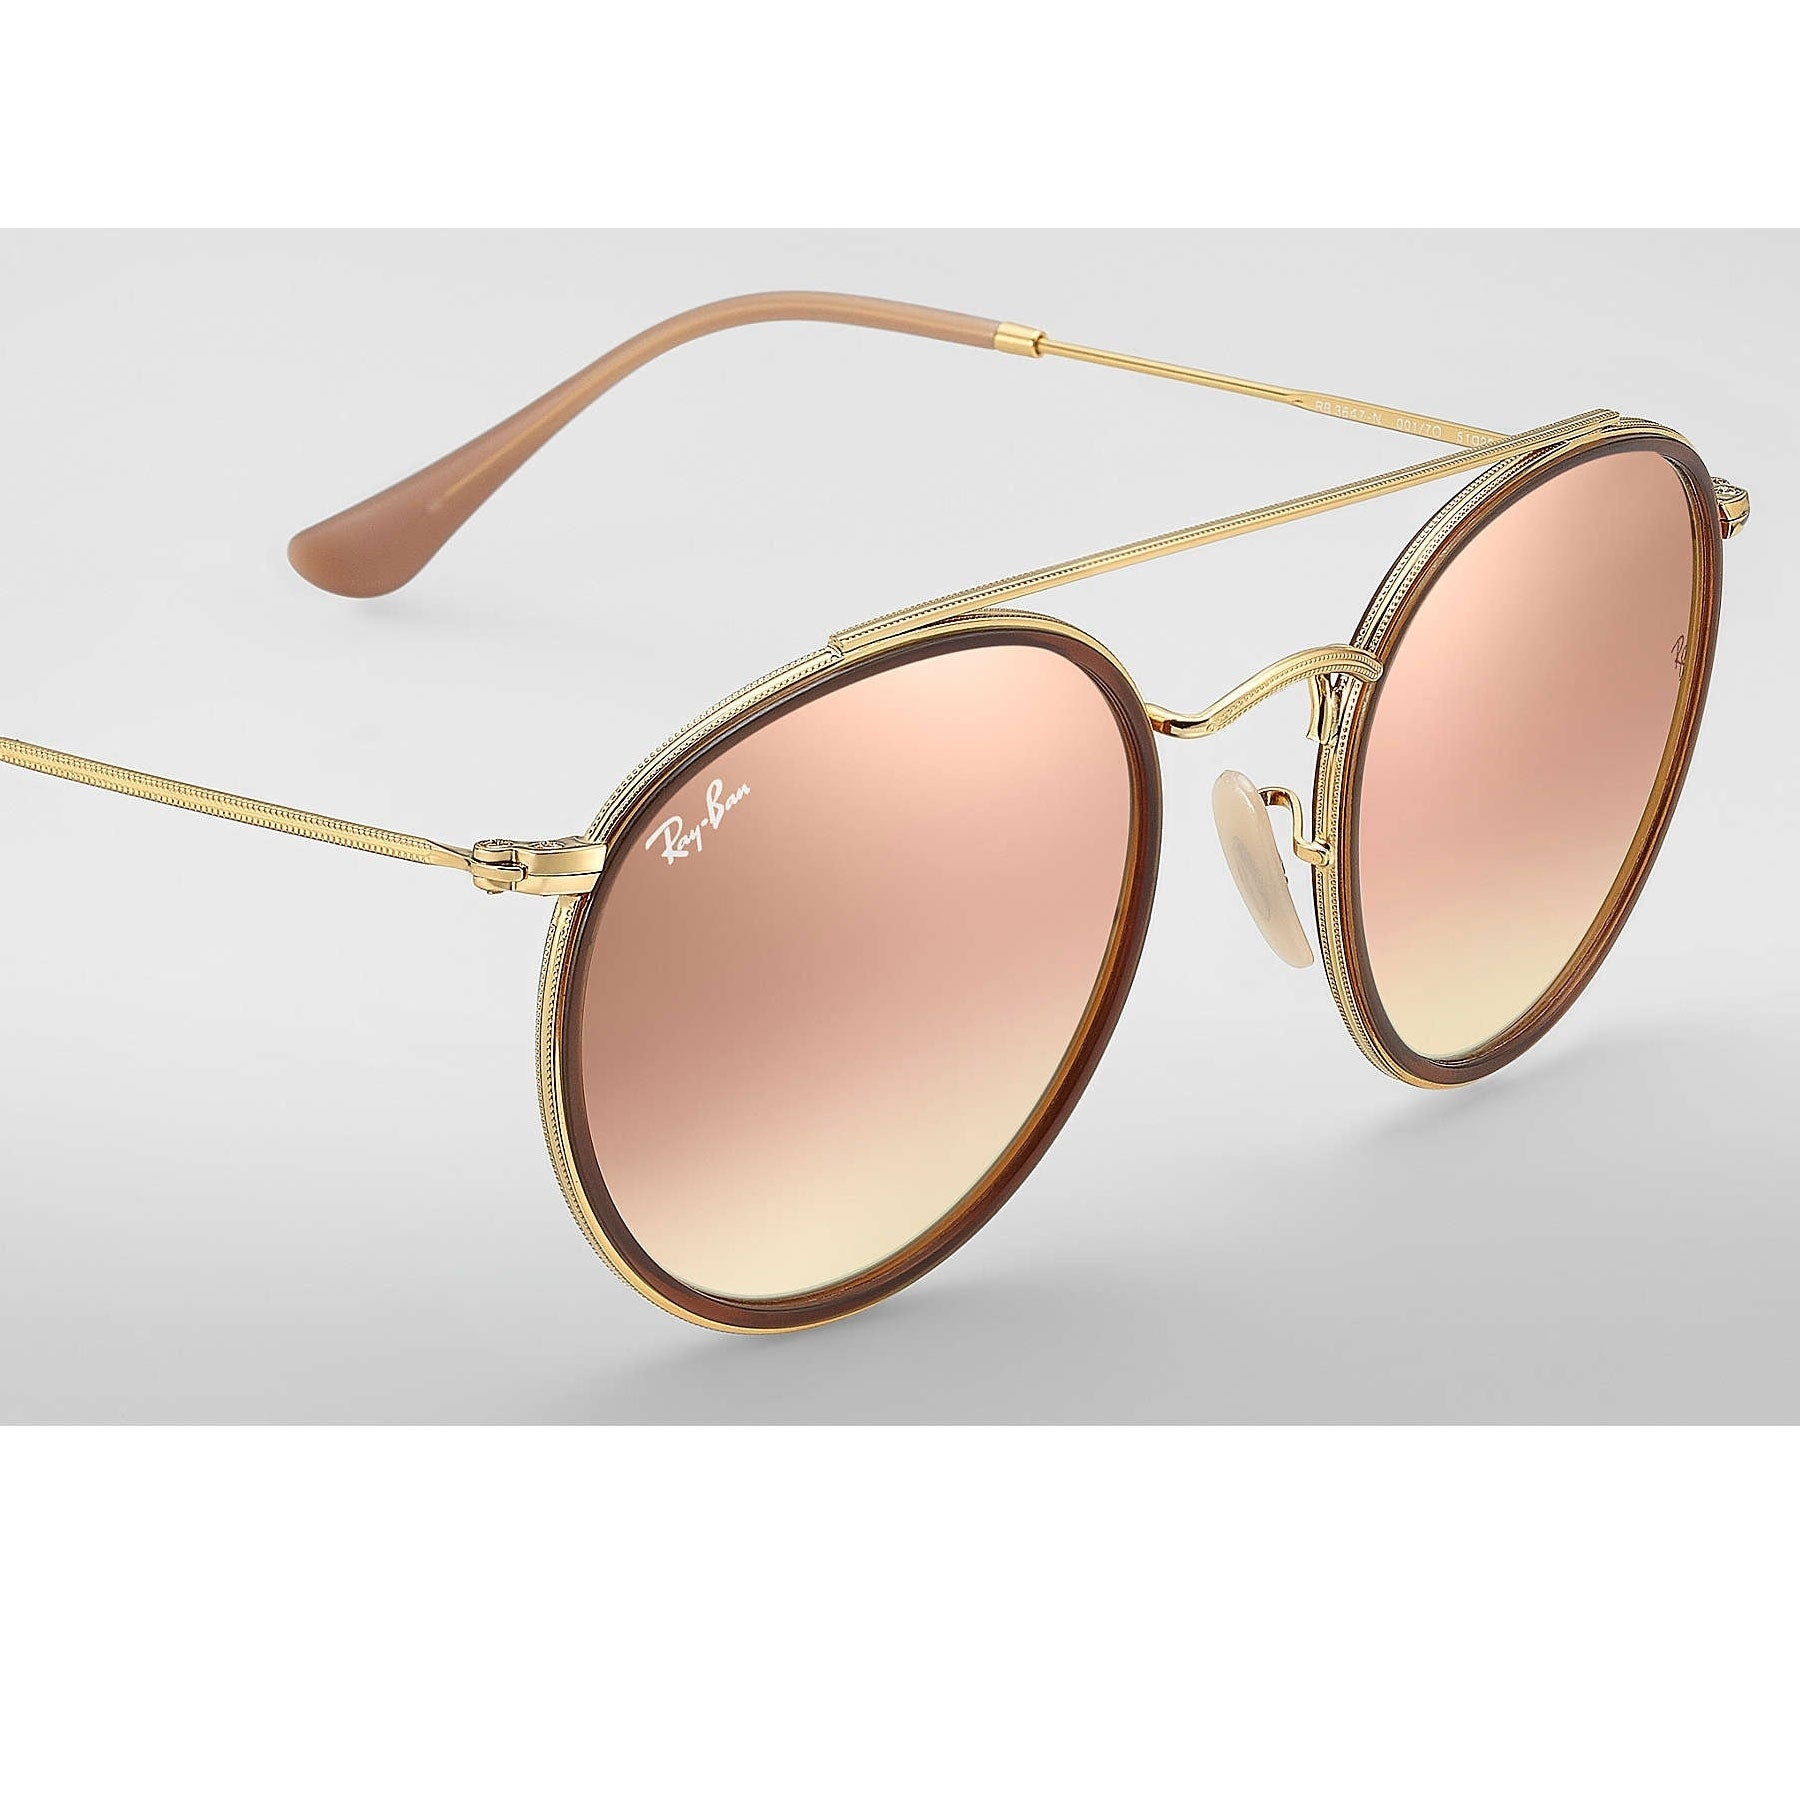 Shop Ray-Ban Round Double Bridge Sunglasses Gold  Copper Gradient Flash  51mm - Free Shipping Today - Overstock.com - 20457185 fe35beba1d